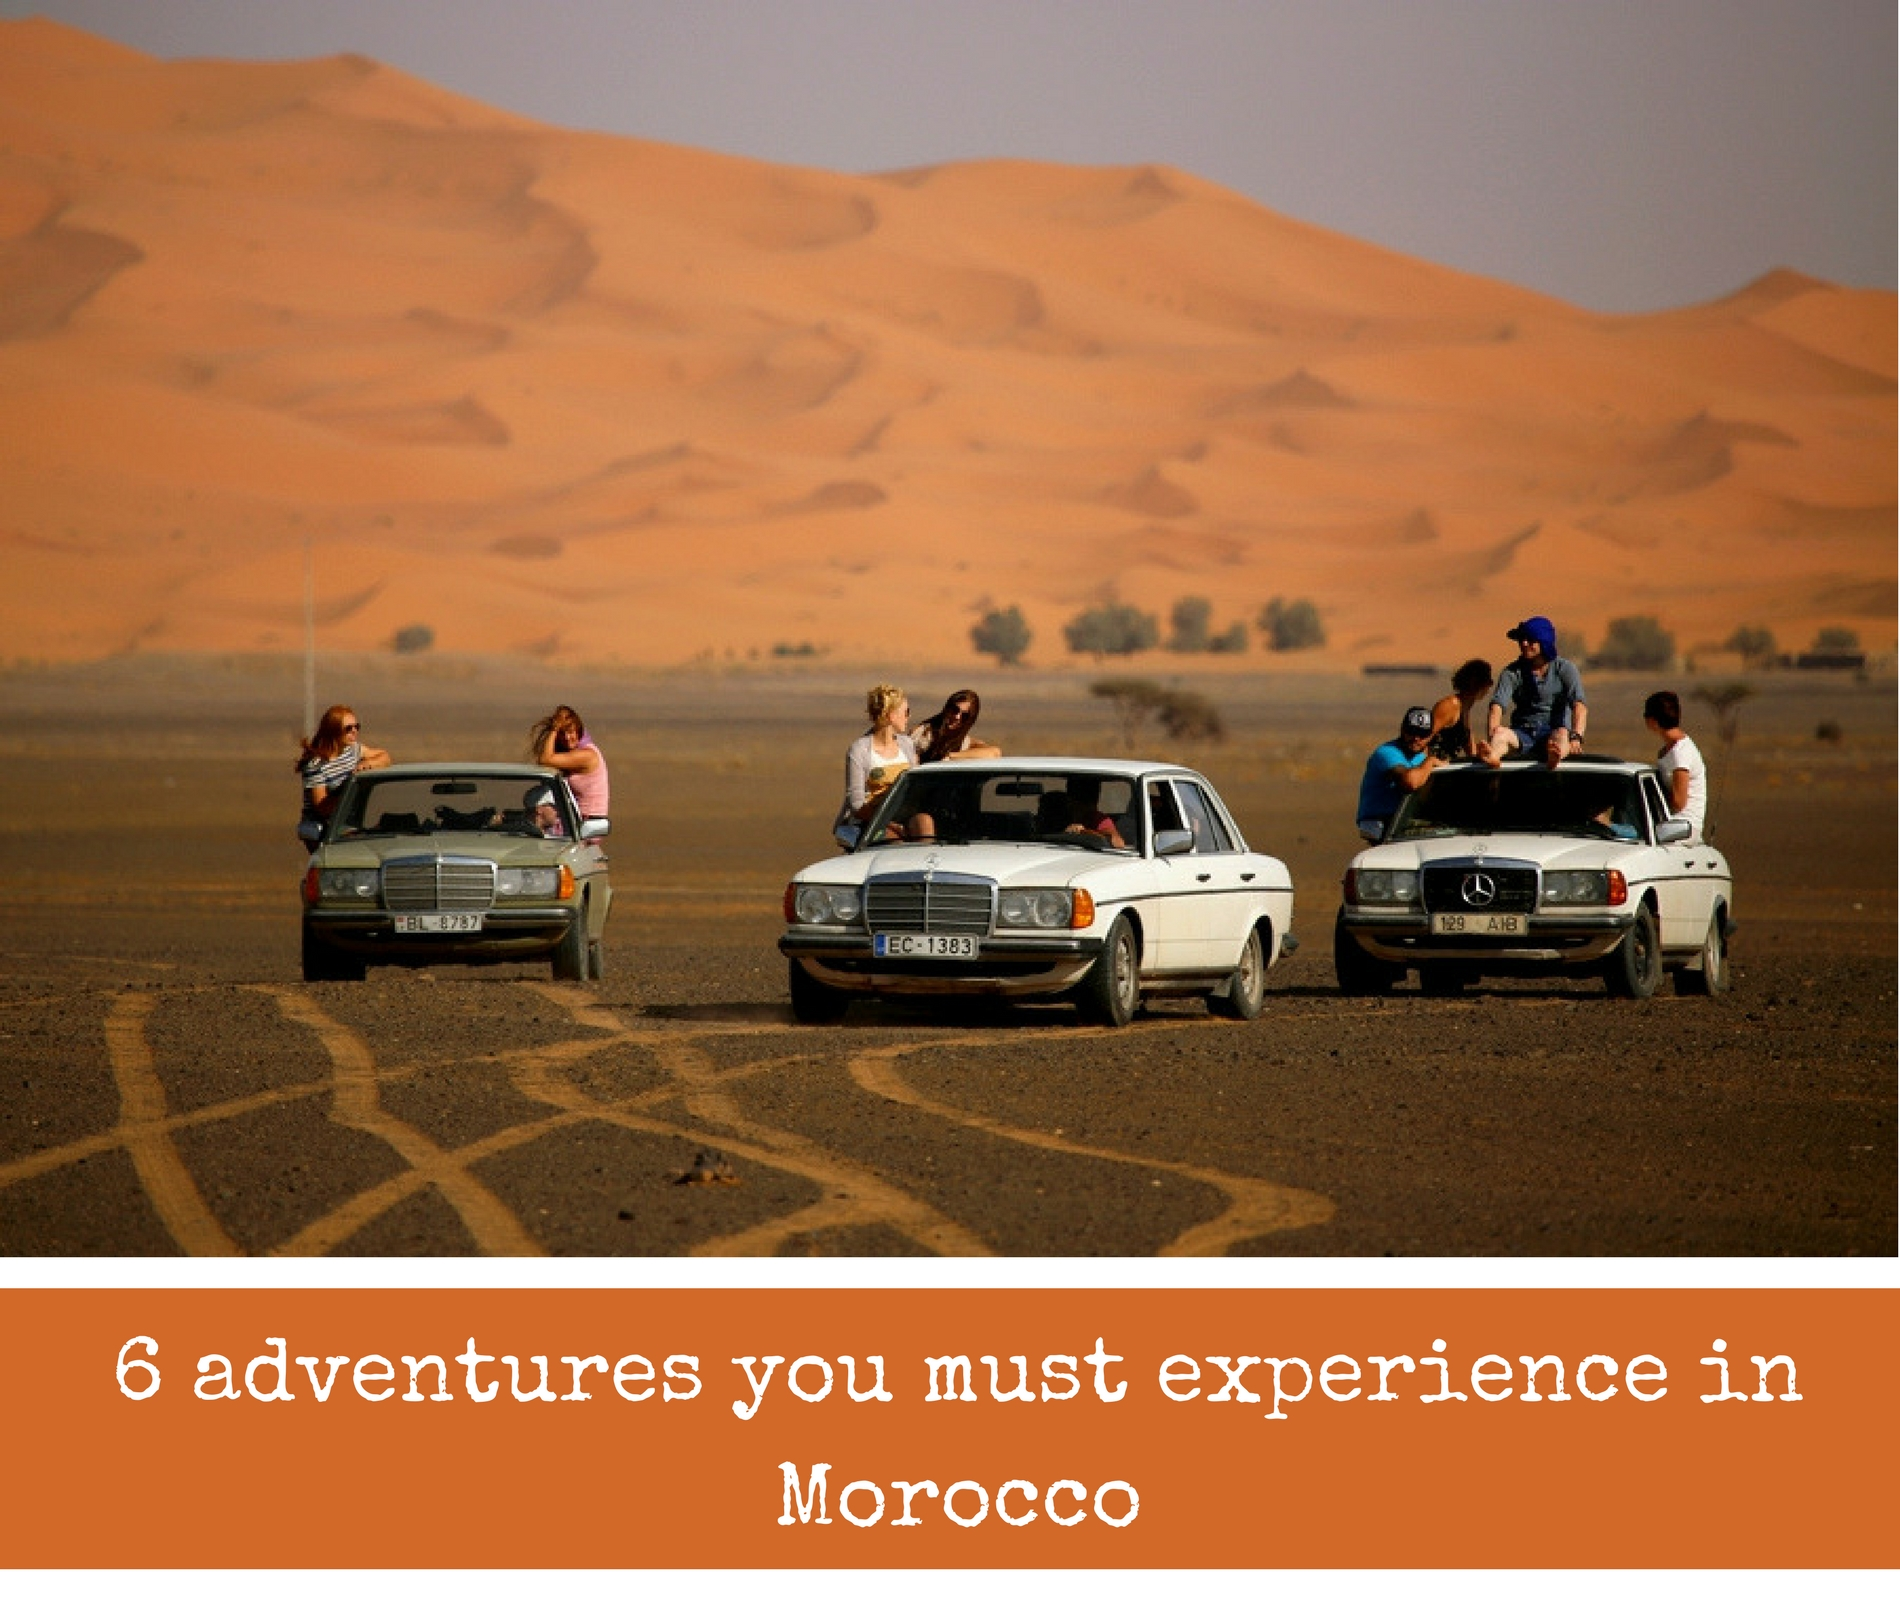 Featured image of 6 adventures you must experience in Morocco